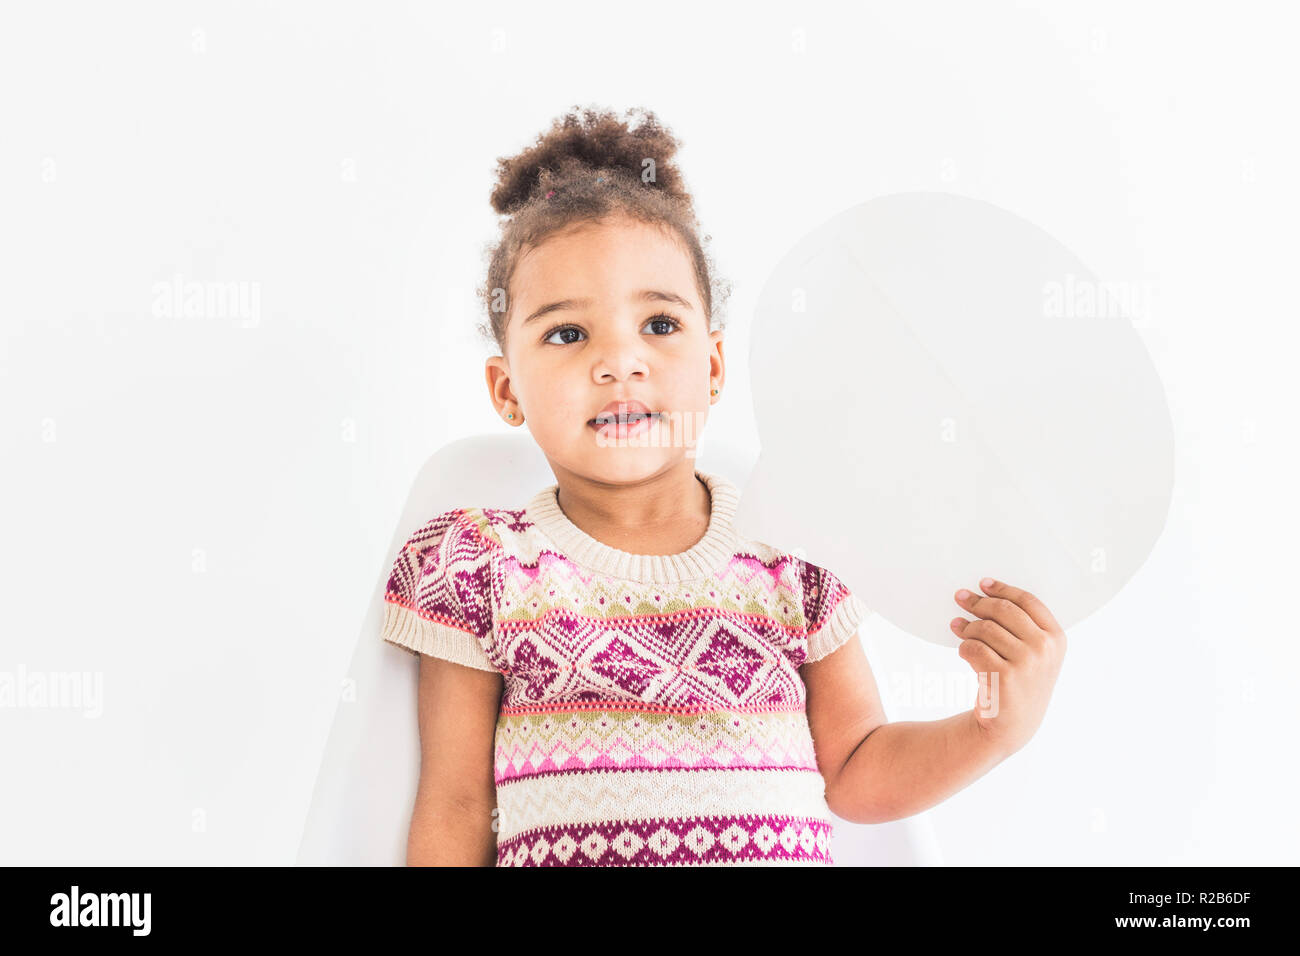 8ee2aa703d59 Portrait of a little girl in a colorful dress on a white background - Stock  Image